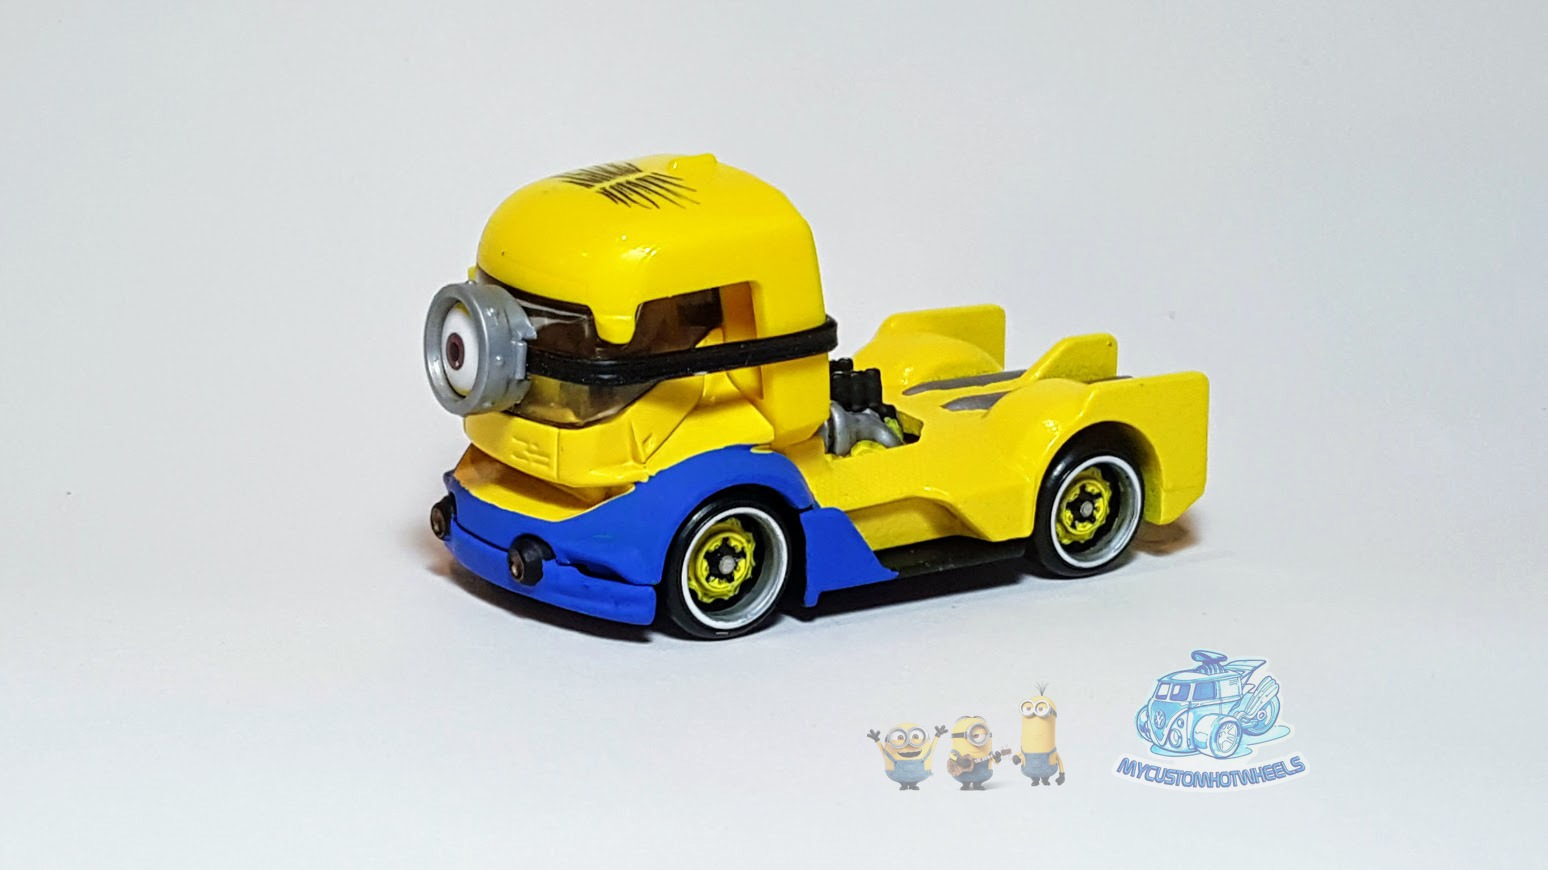 minion motorsports my custom hotwheels diecast cars. Black Bedroom Furniture Sets. Home Design Ideas